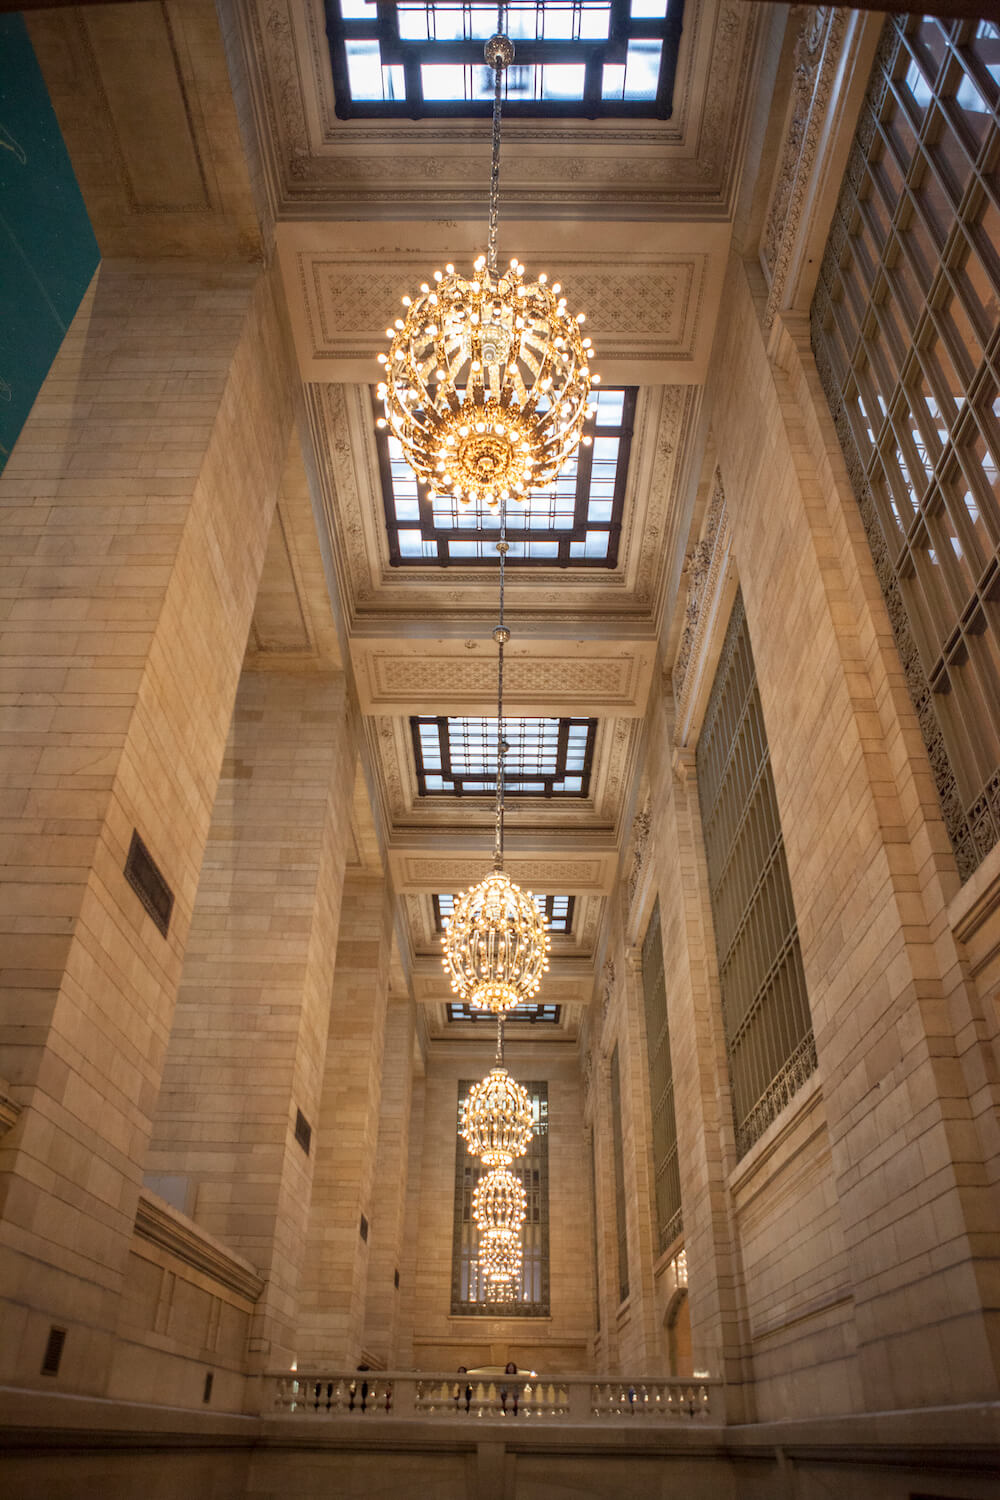 Architecture attractions Grand Central Terminal